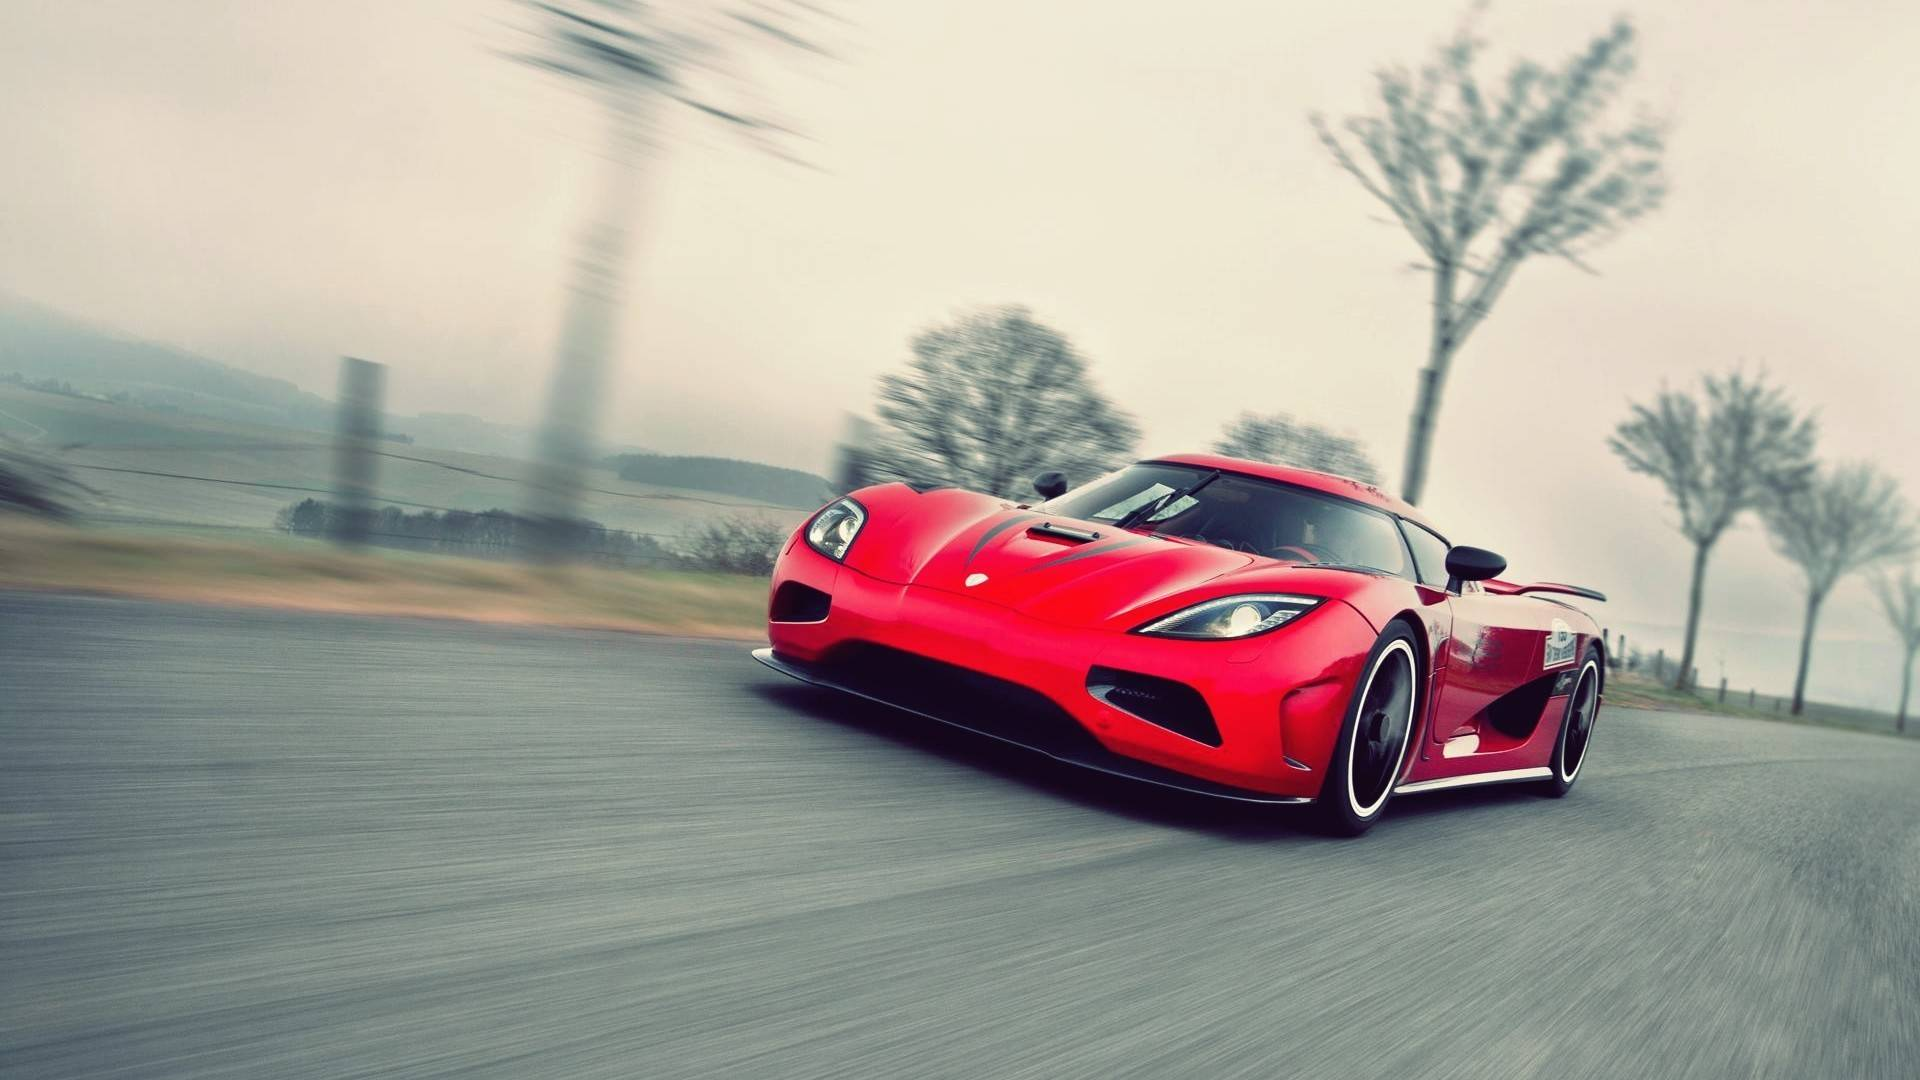 Koenigsegg Agera Red Photo How To Get Extreme Background